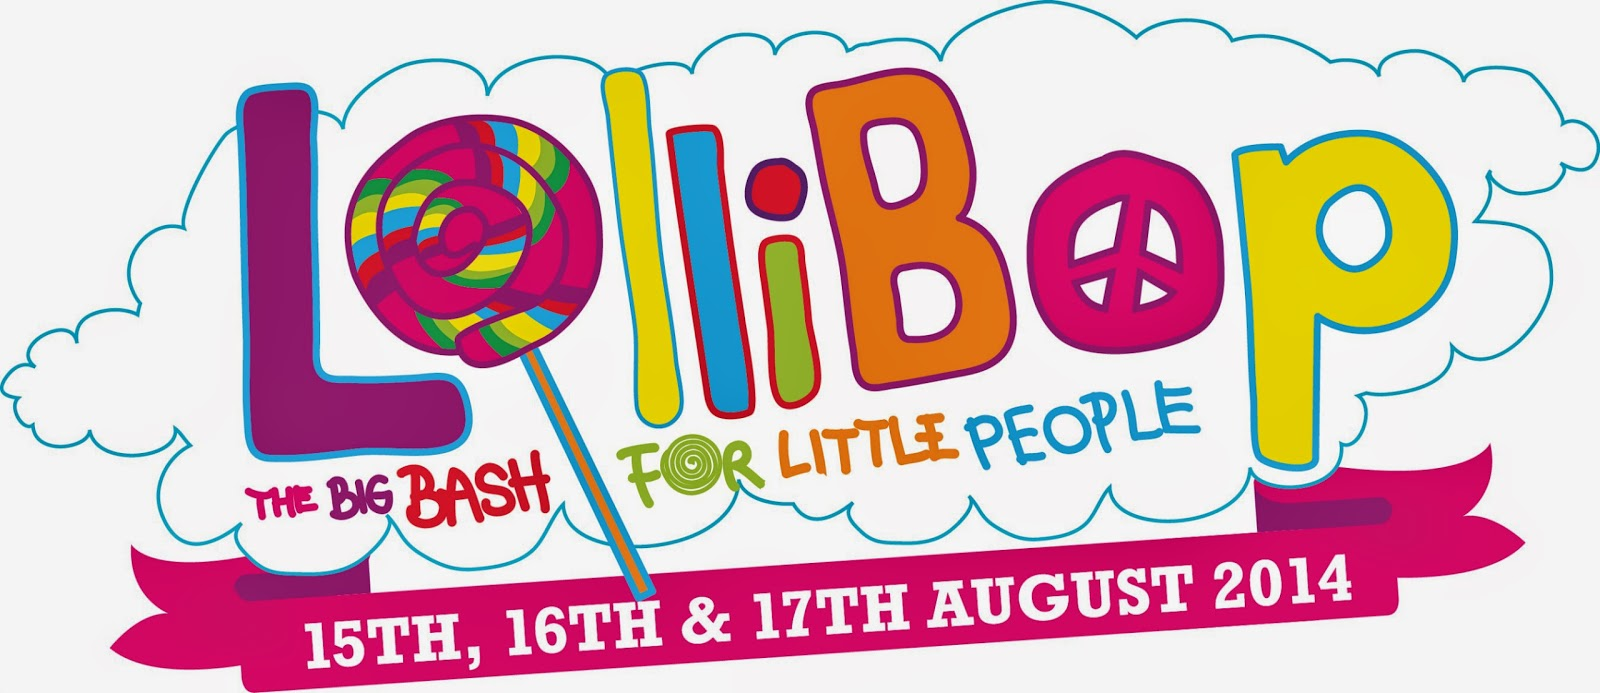 Lollibop Festival 2014, LolliBop Festival Family Ticket Giveaway, Summer Festival competition